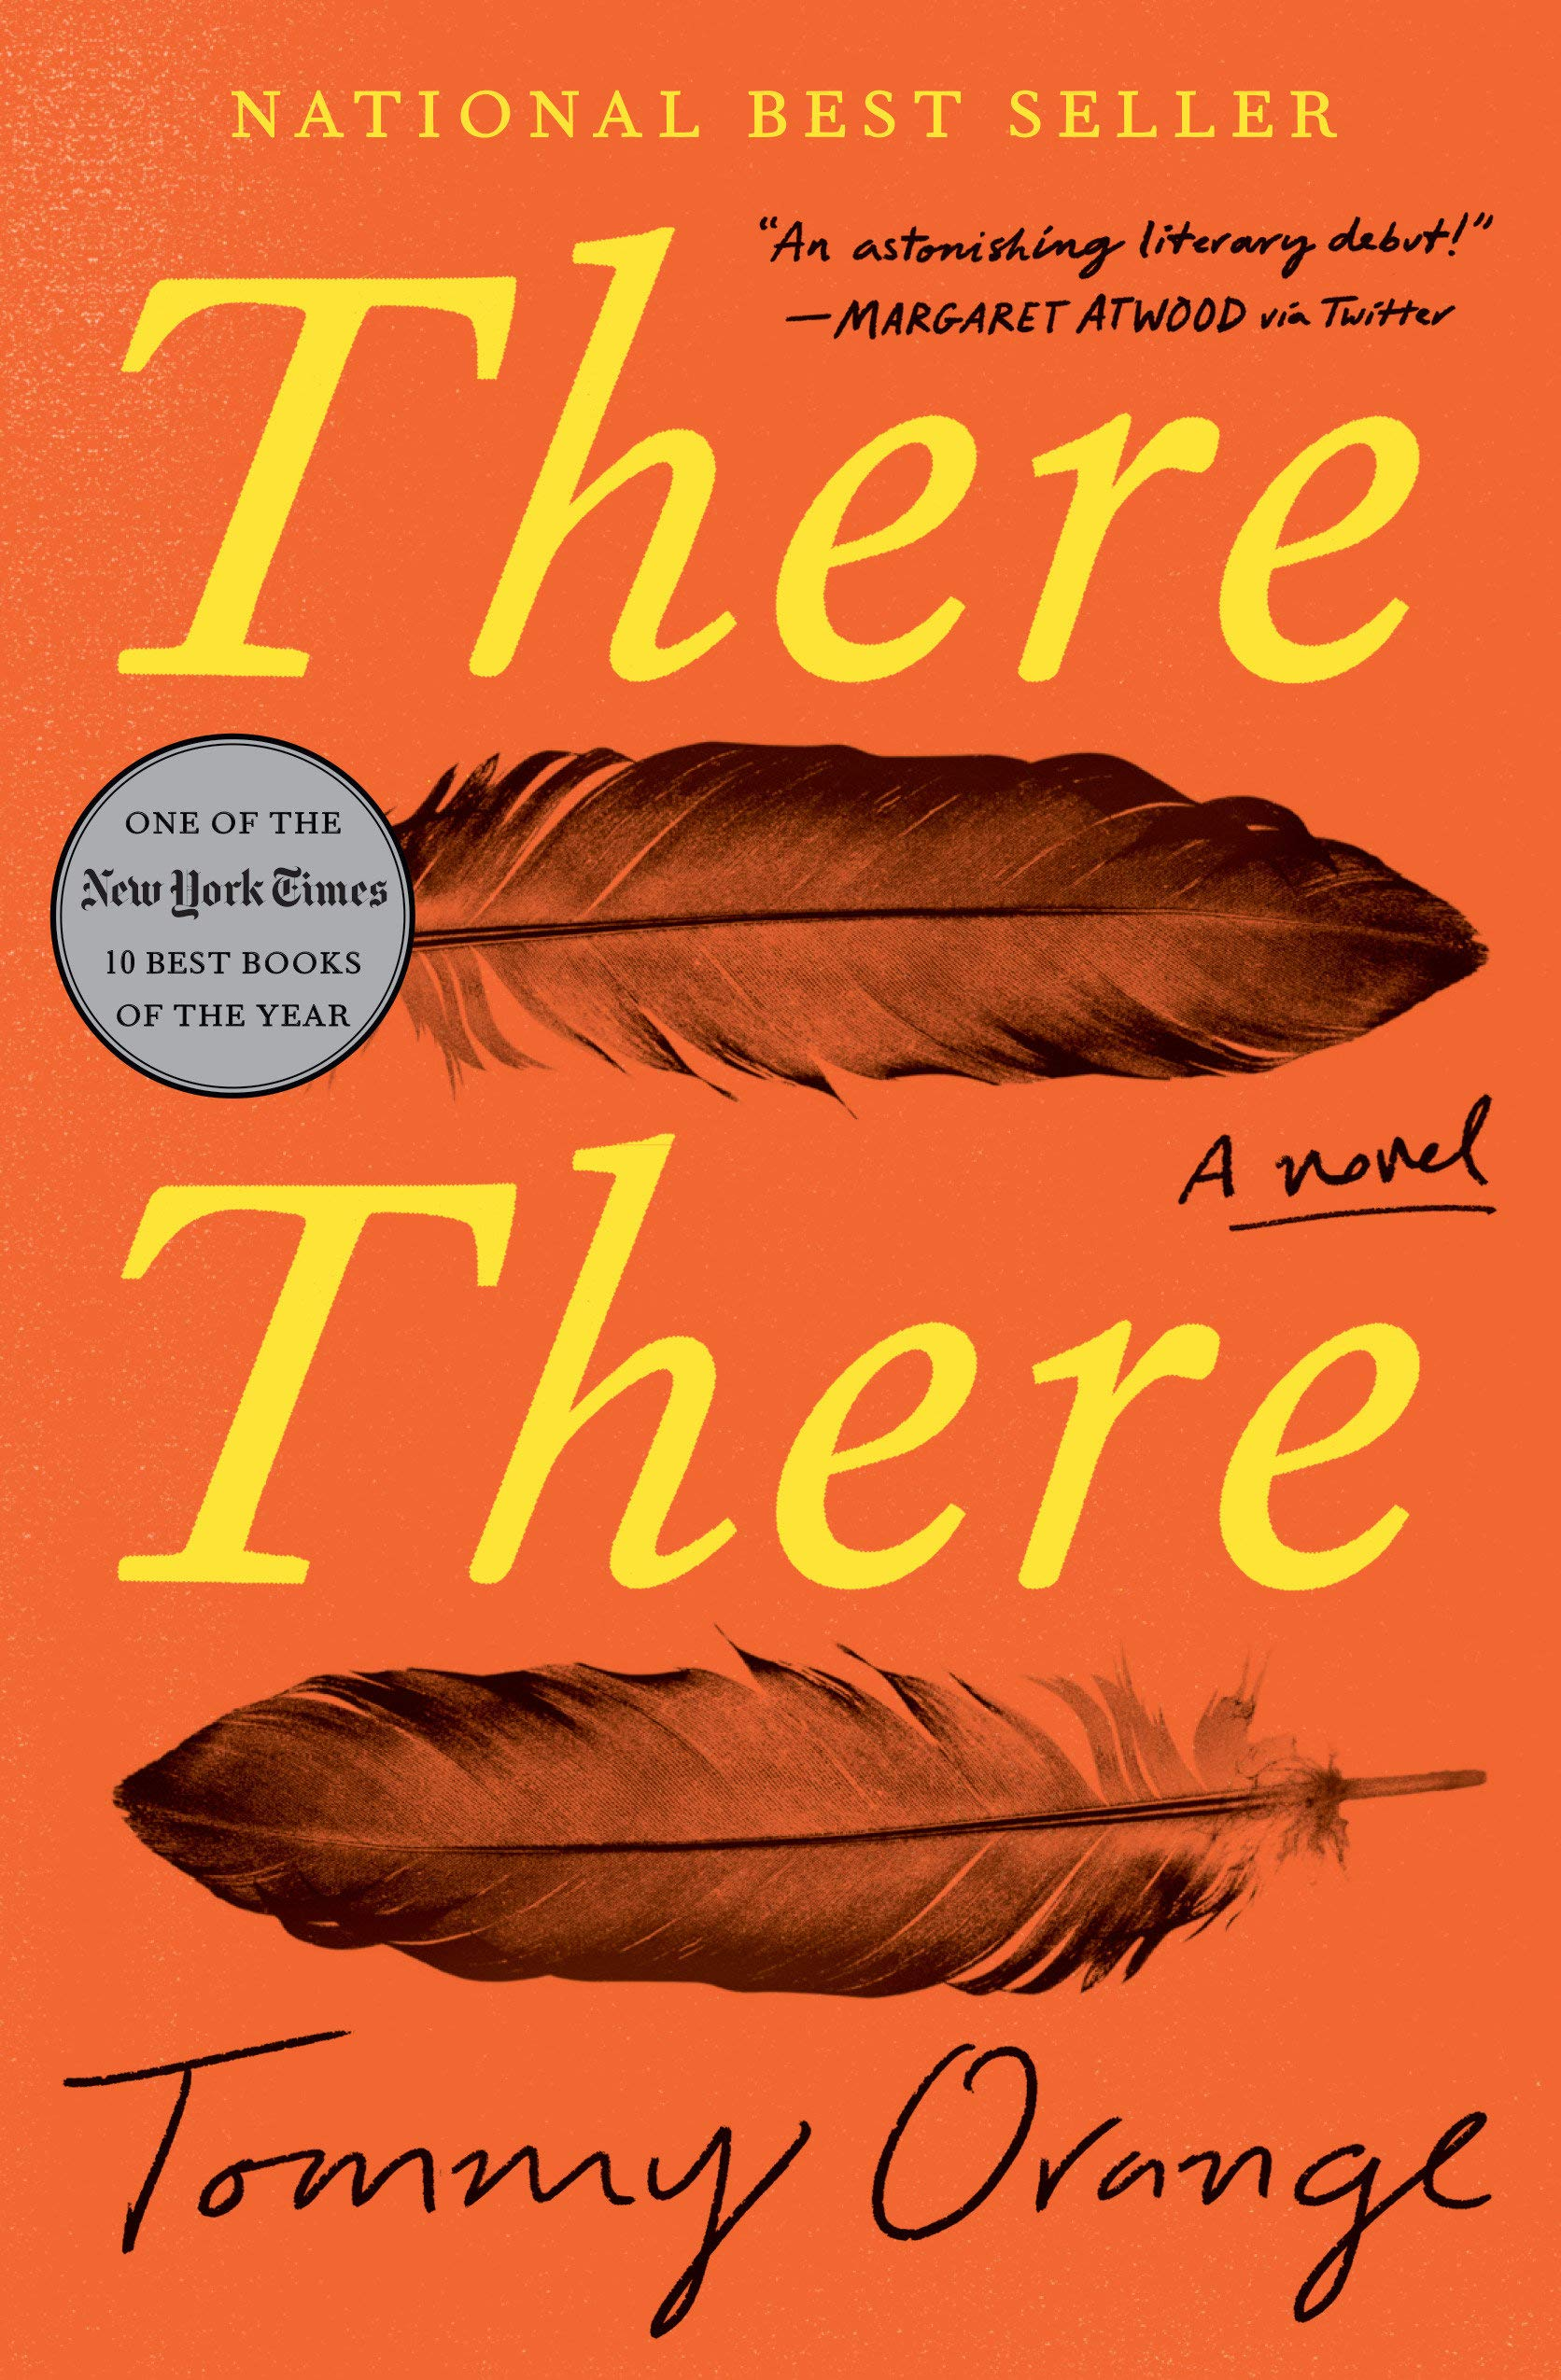 Amazon.com: There There: A novel: 9780525520375: Orange, Tommy: Books